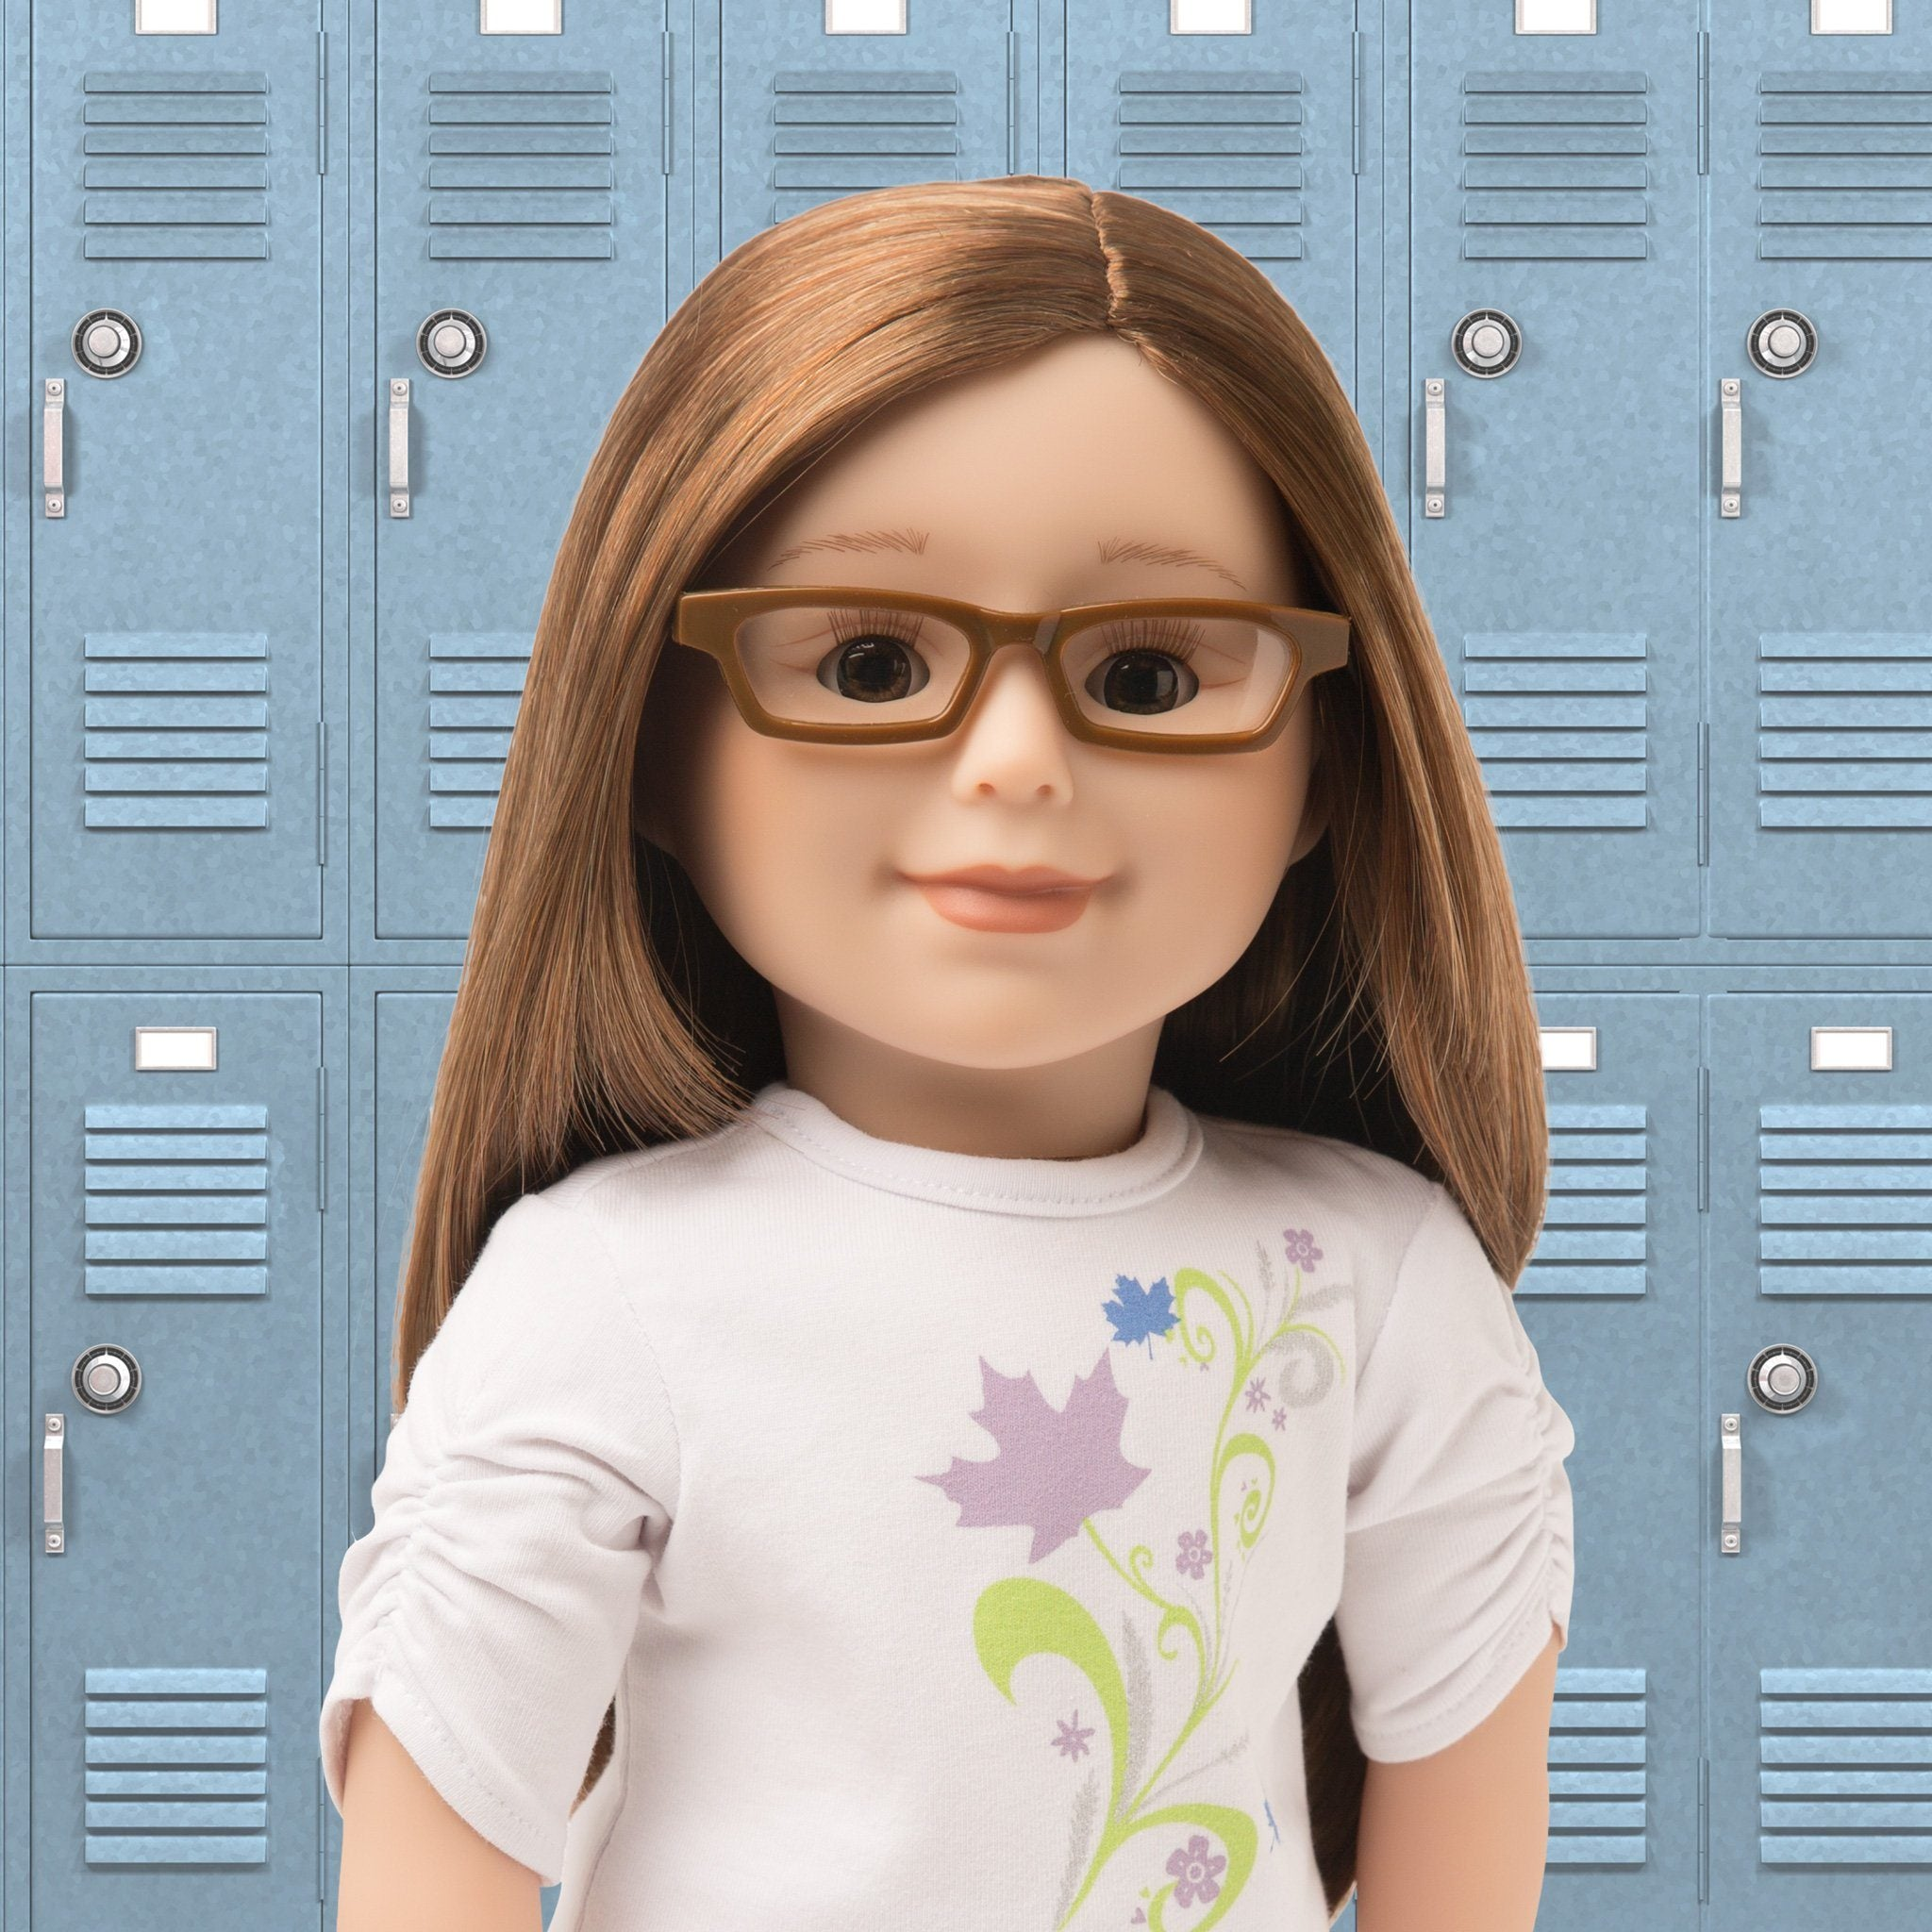 Brown glasses fit all 18 inch dolls.